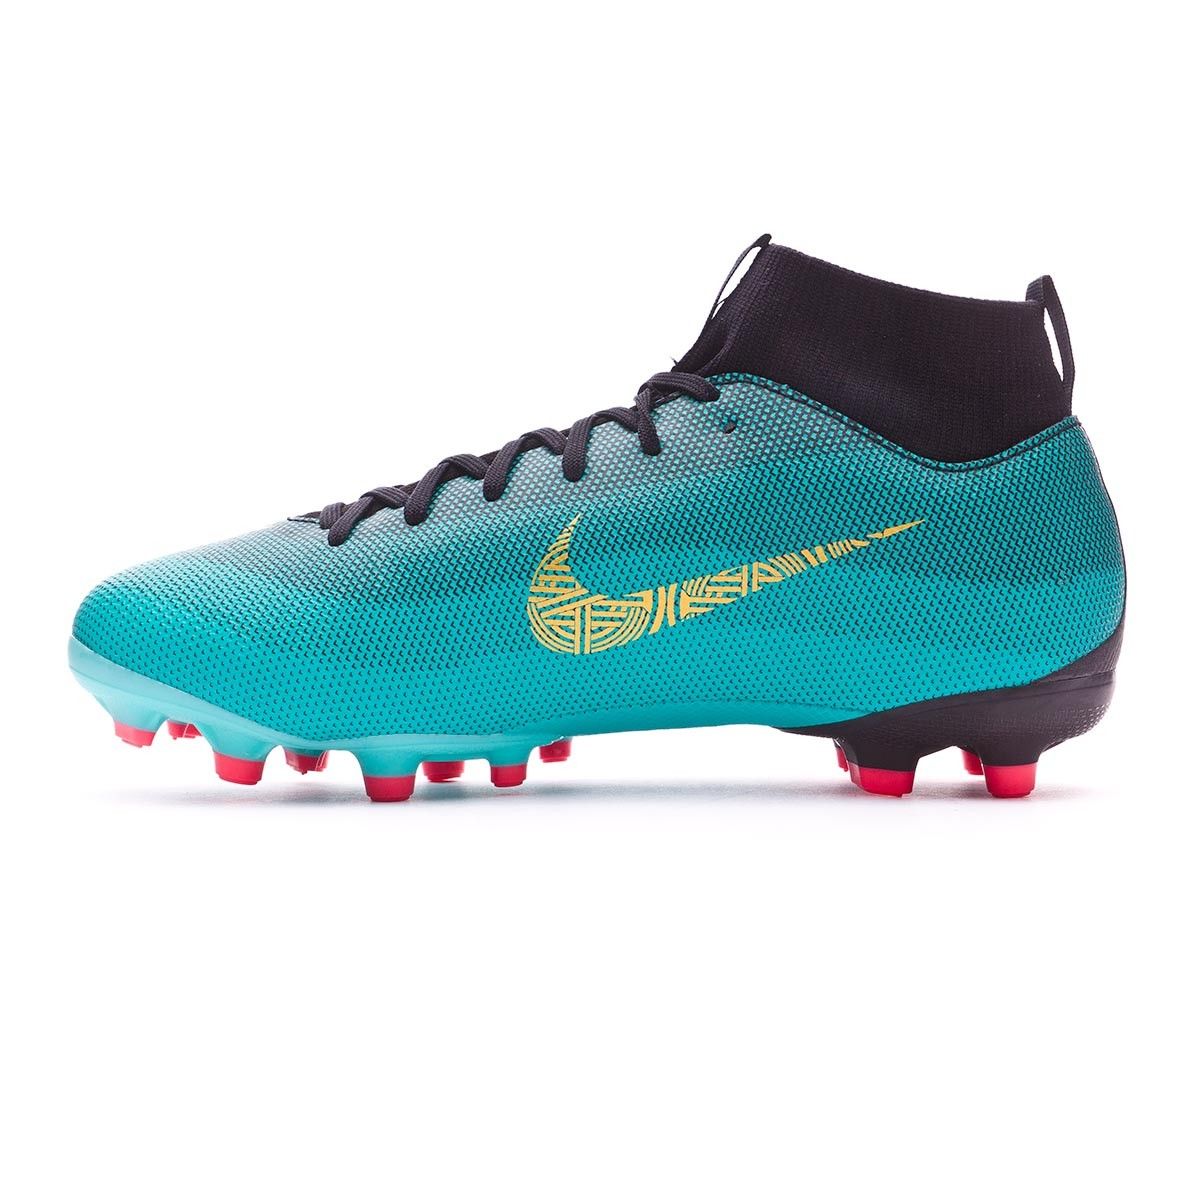 the best attitude 18ed0 b9997 Scarpe Nike Mercurial Superfly VI Academy GS CR7 MG Junior Clear  jade-Metallic vivid gold-Black - Negozio di calcio Fútbol Emotion